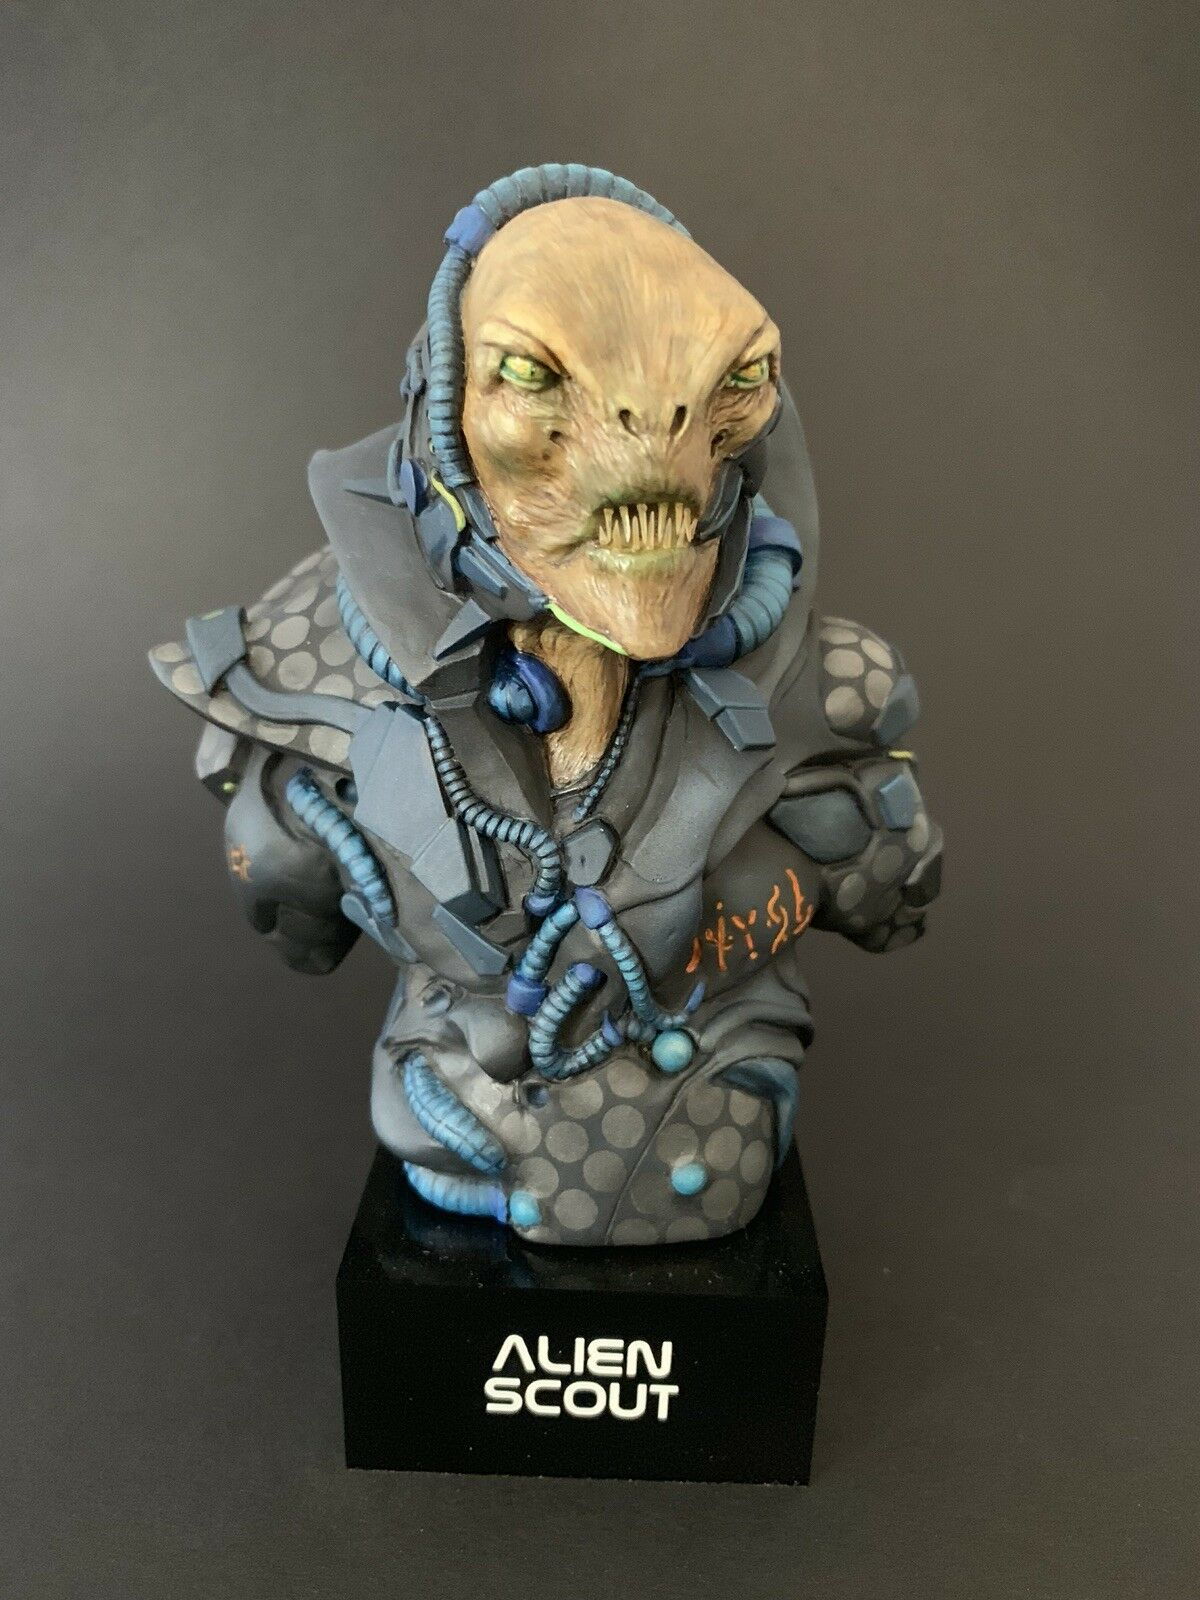 1 6 scale Alien Scout Bust, sculpted by Giorgos Tsougkouzidis